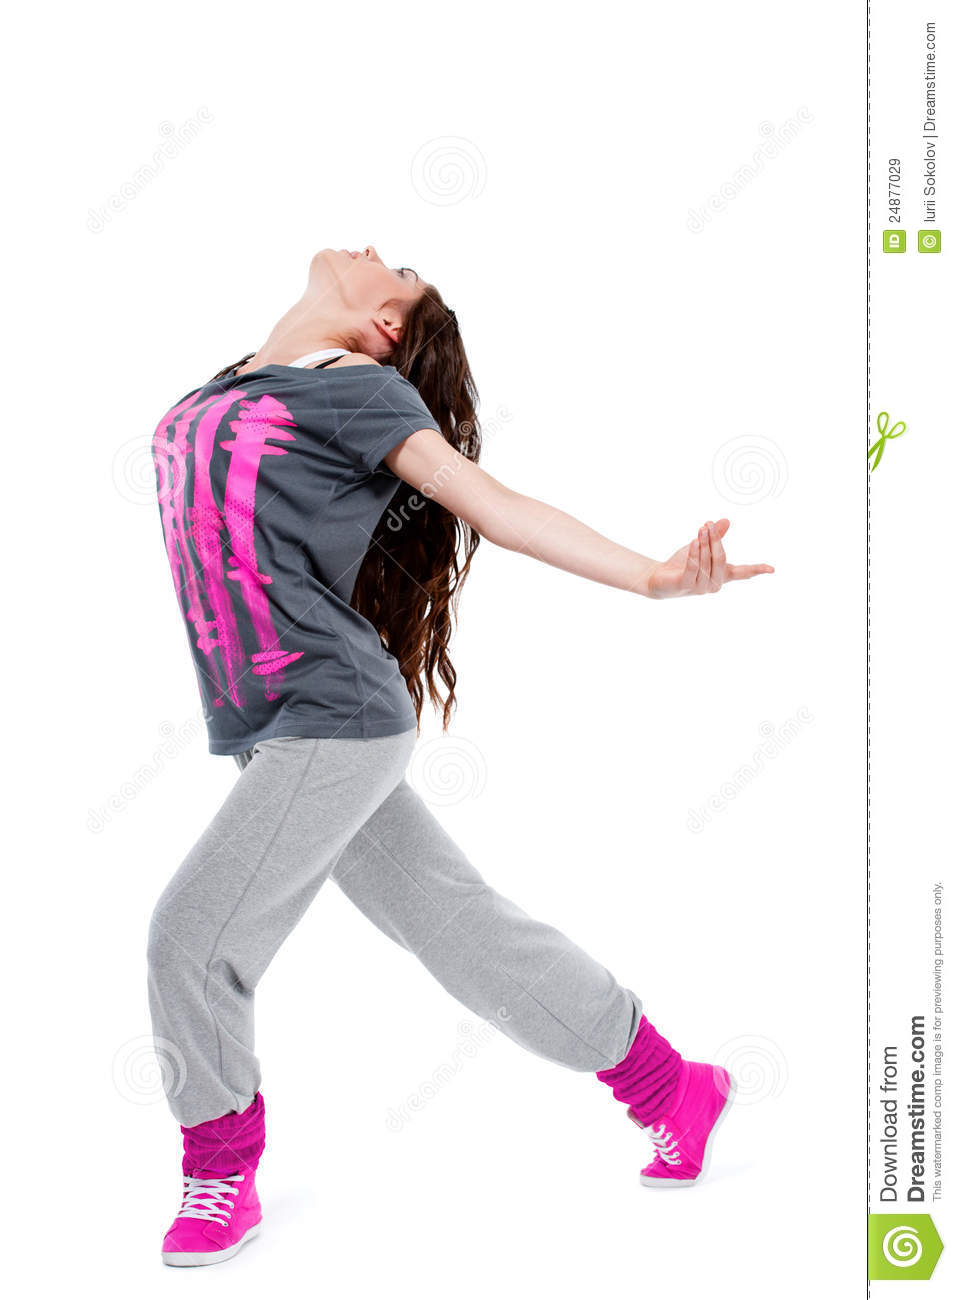 Hip images of girl